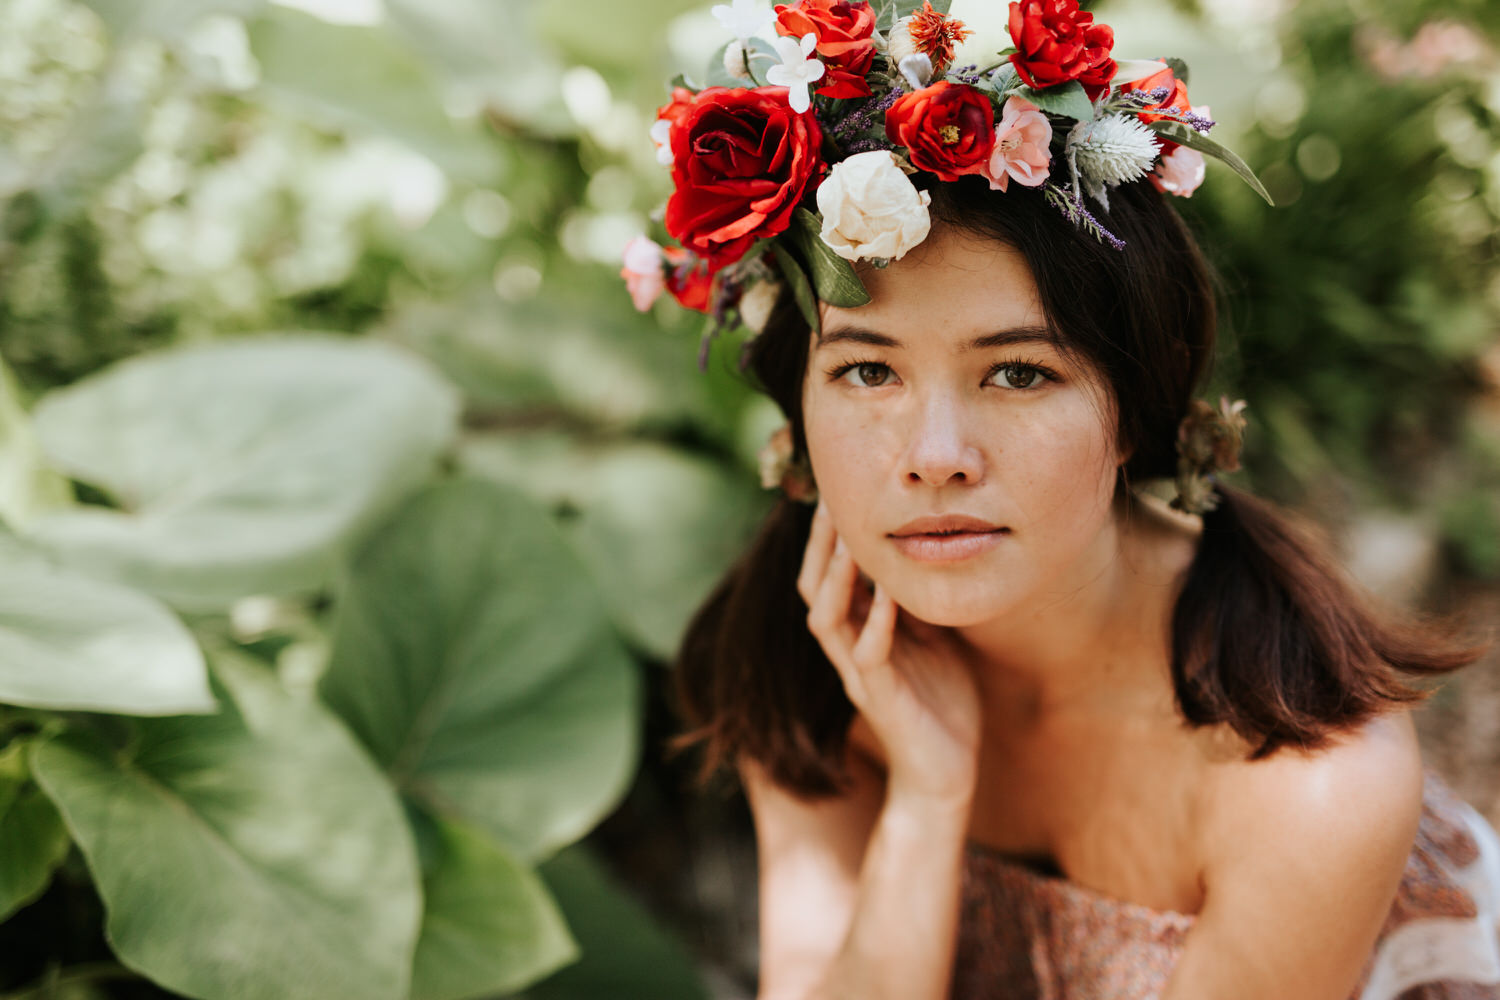 Woman in rose flower crown surrounded by plants